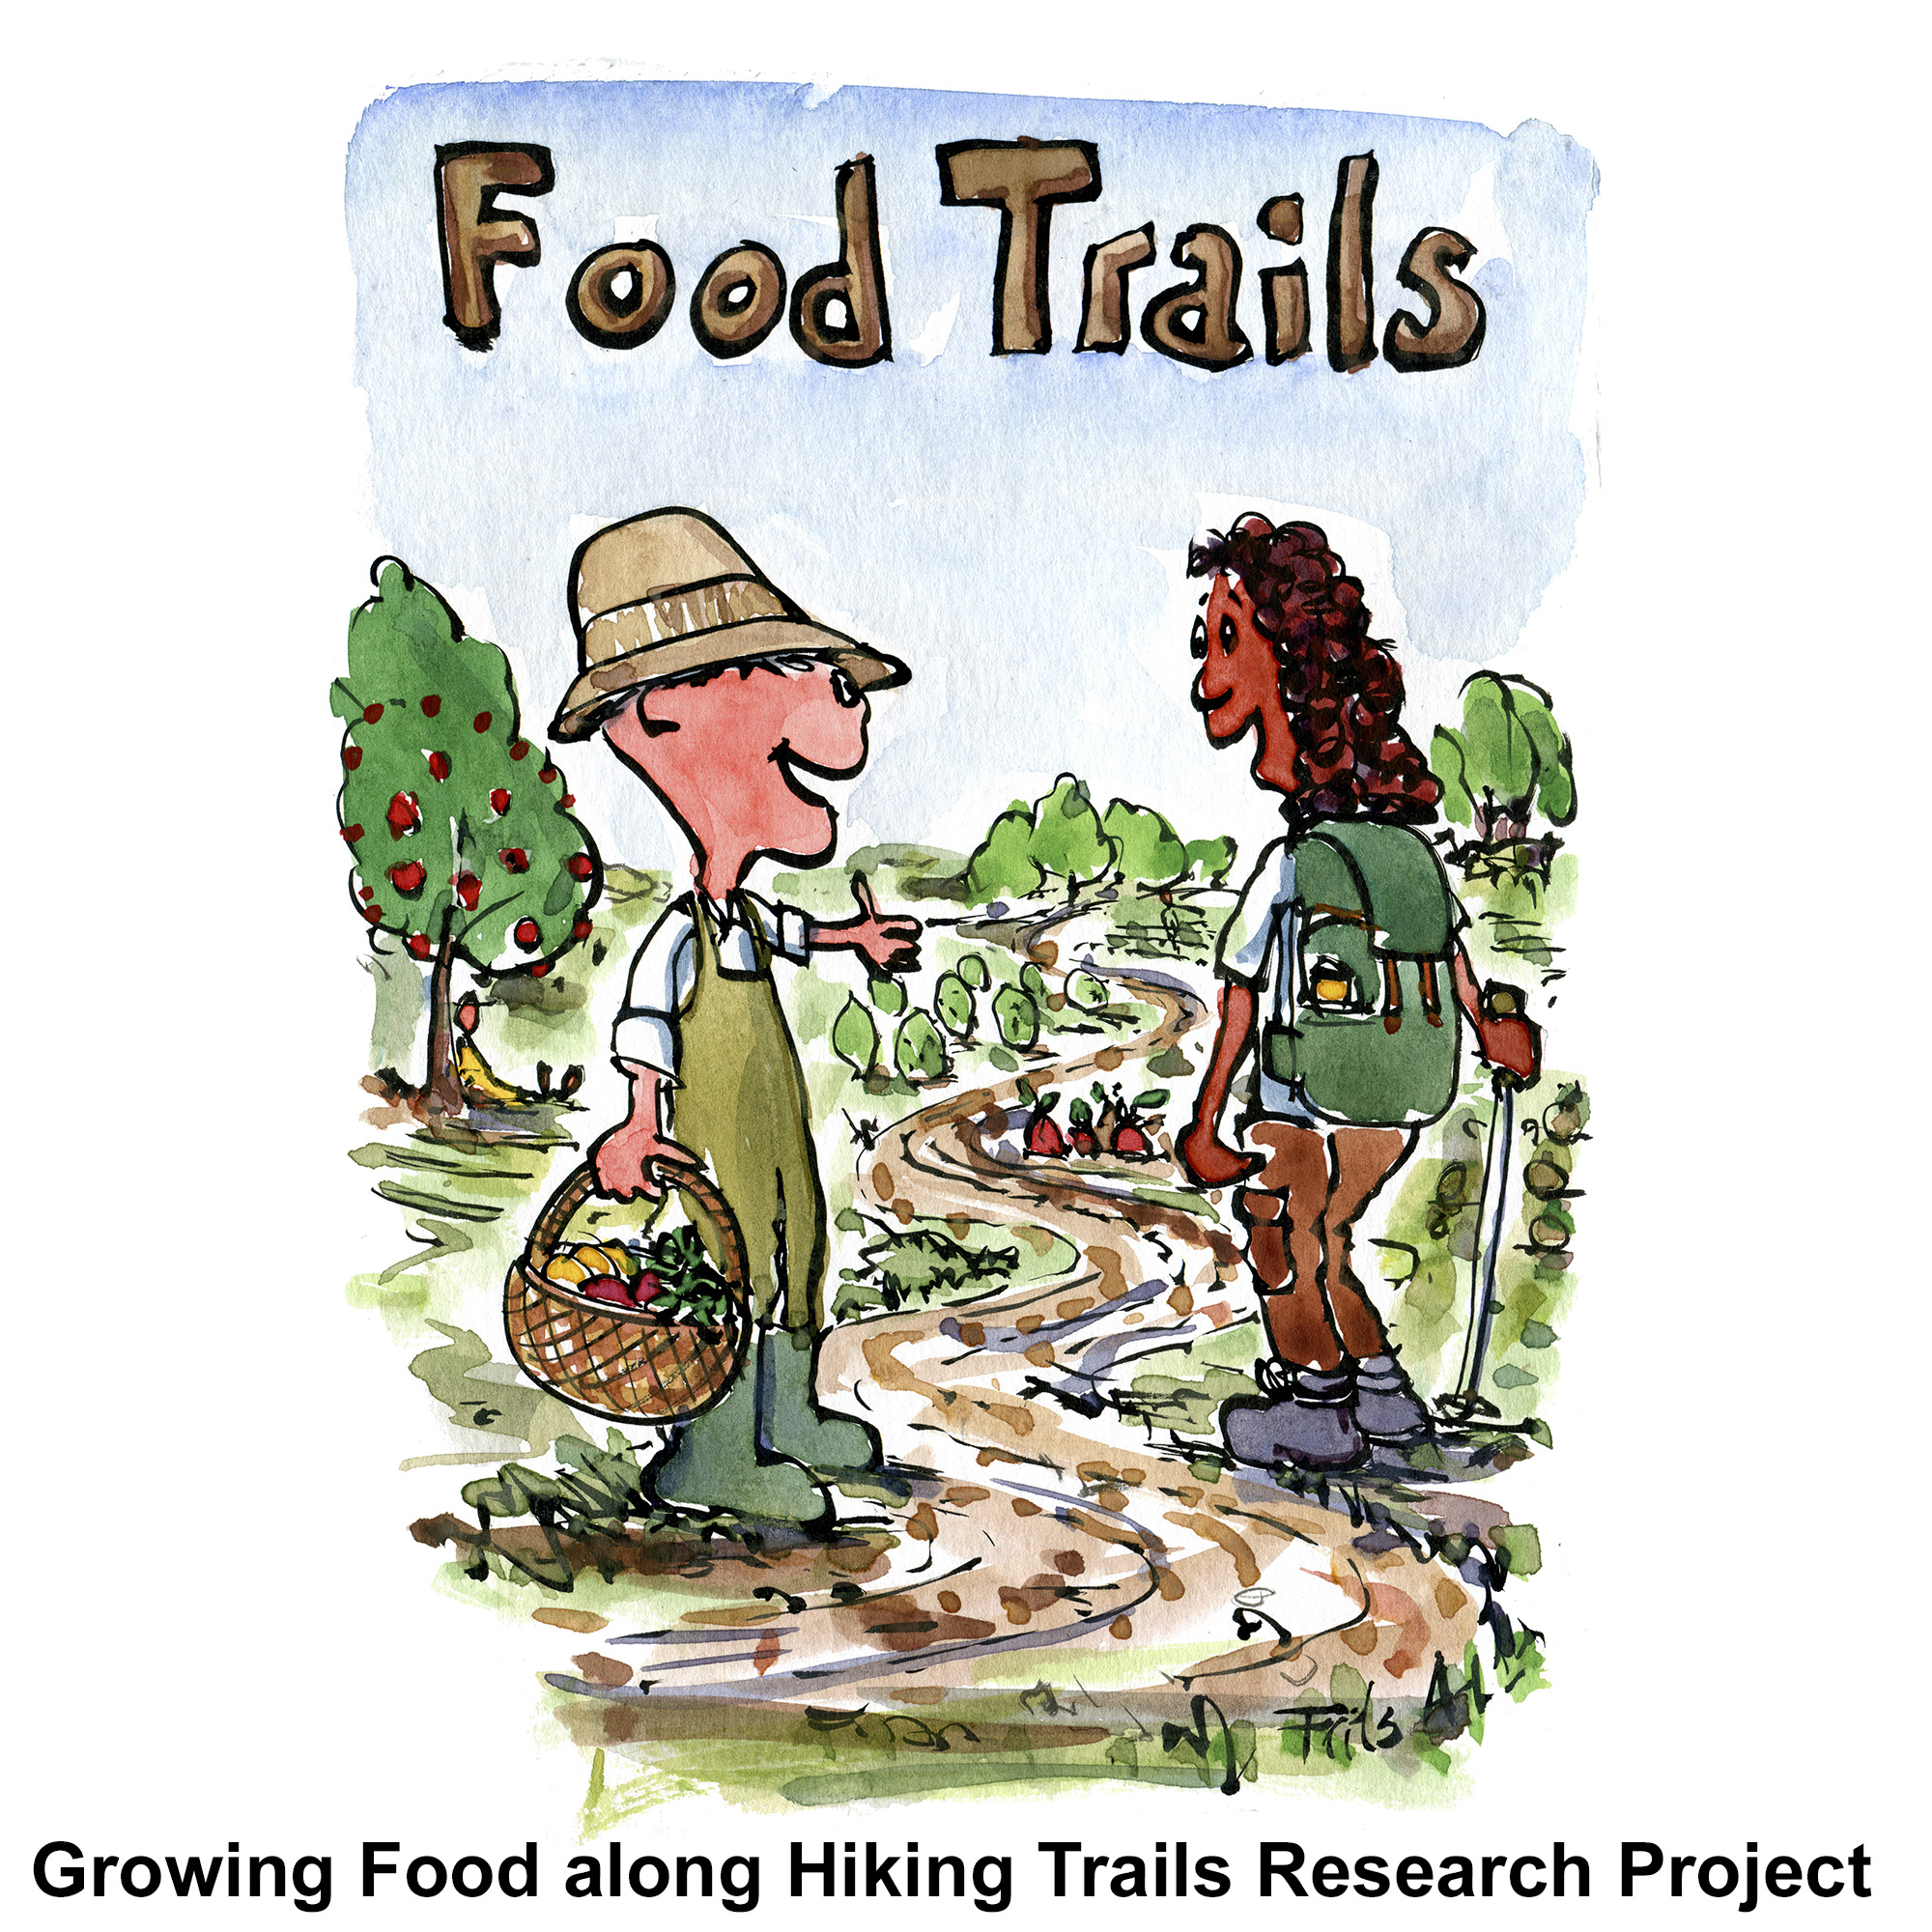 Research on edible hiking trails